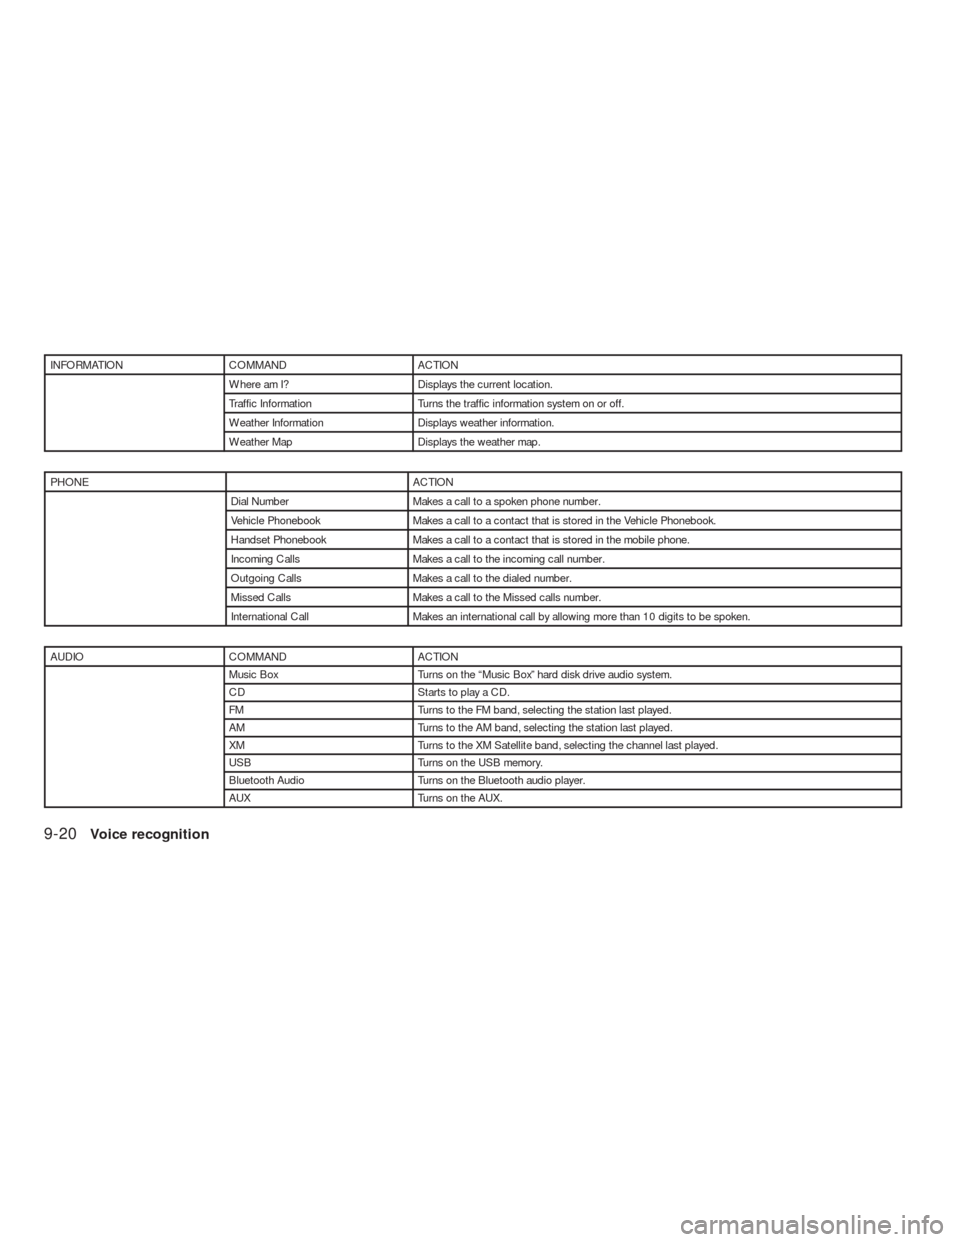 NISSAN ALTIMA HYBRID 2010 L32A / 4.G Navigation Manual, Page 253